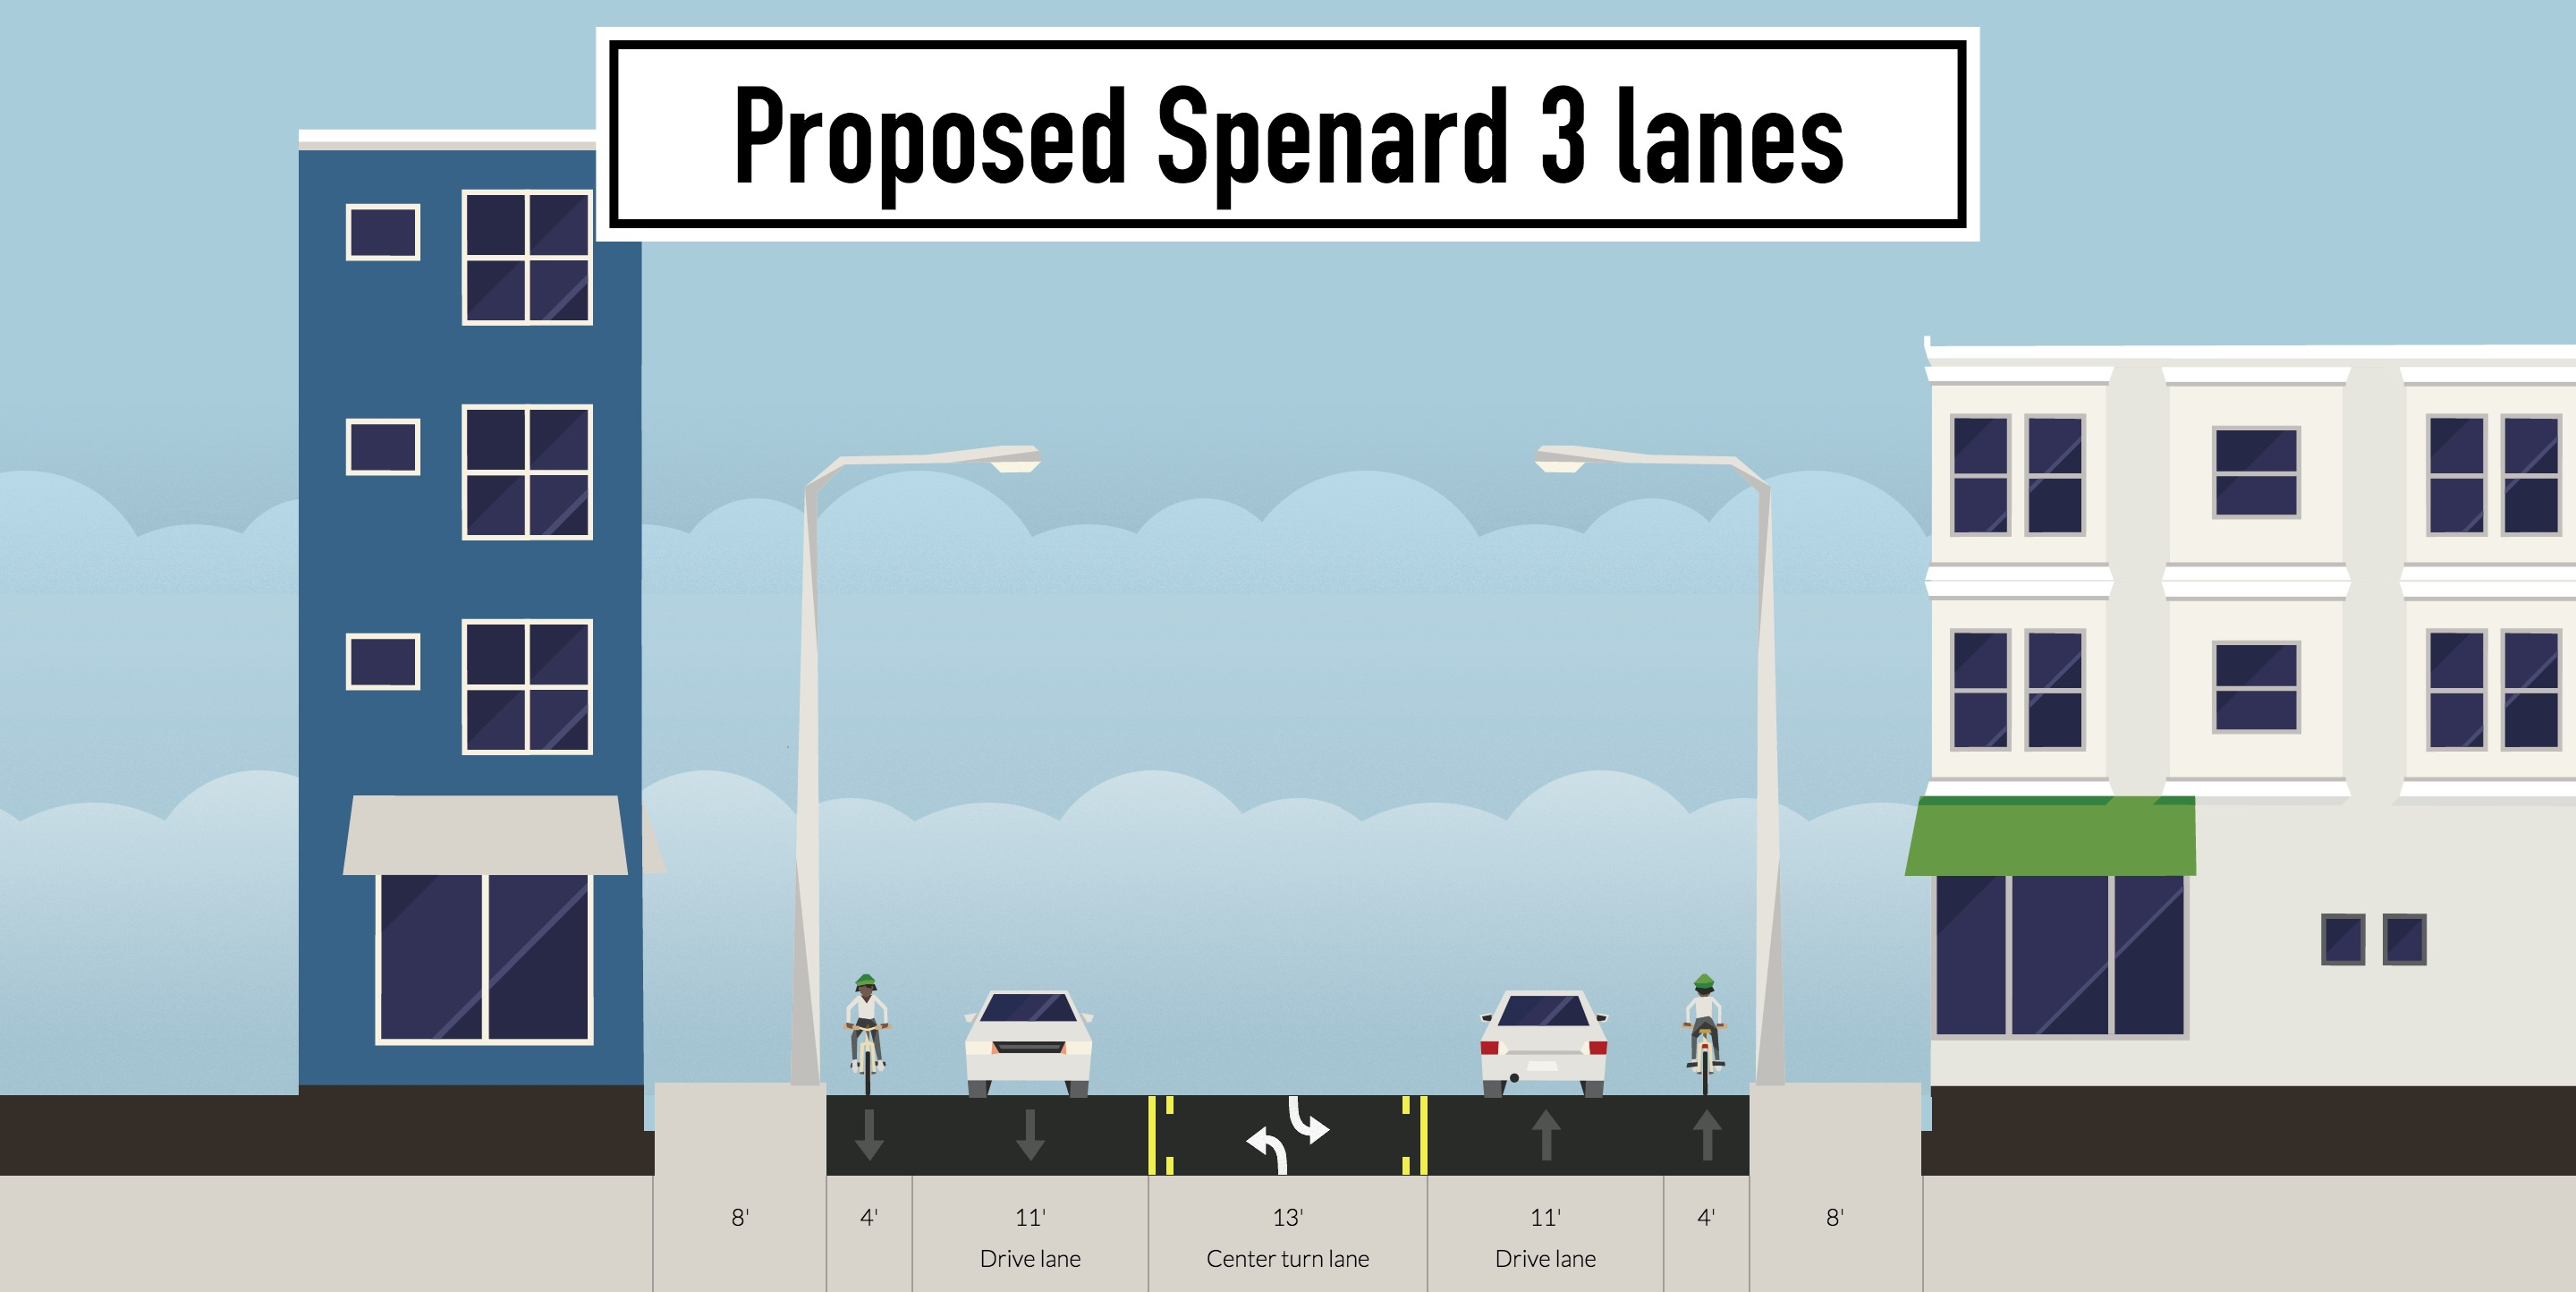 proposed-spenard-3-lanes.jpg